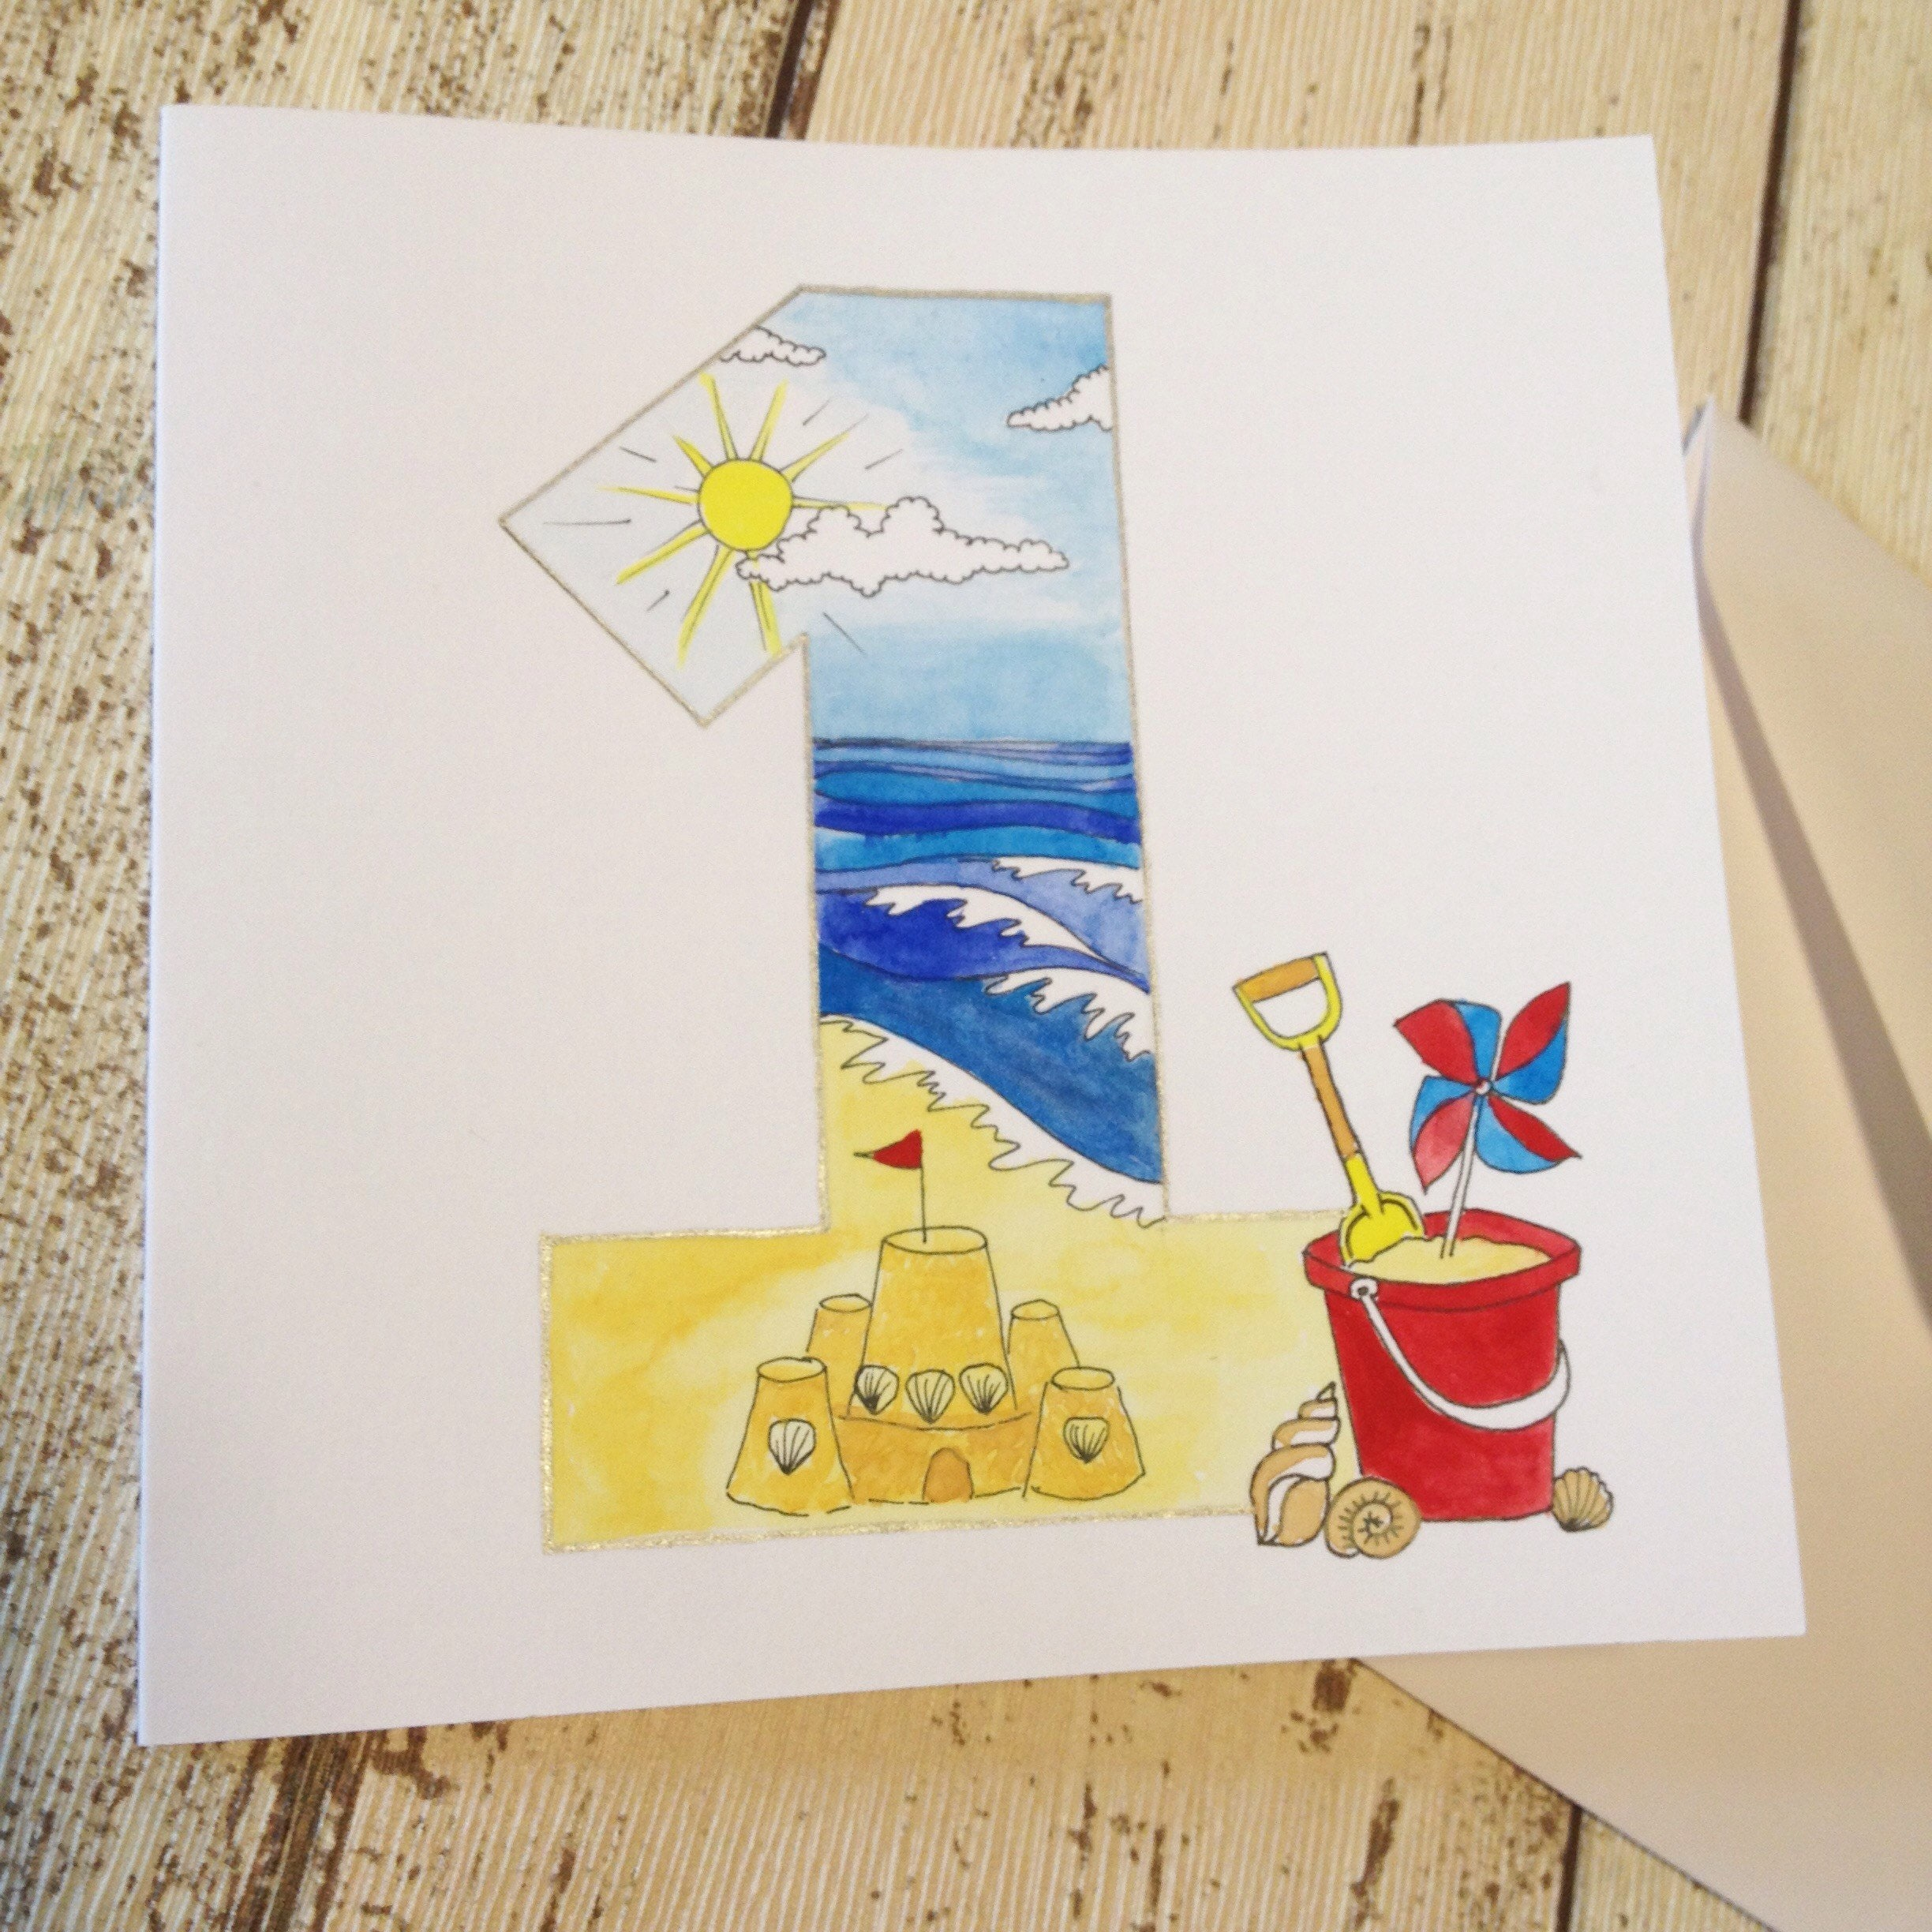 Wall Street Themed Birthday Cards : Beach theme st birthday card bucket and spade number